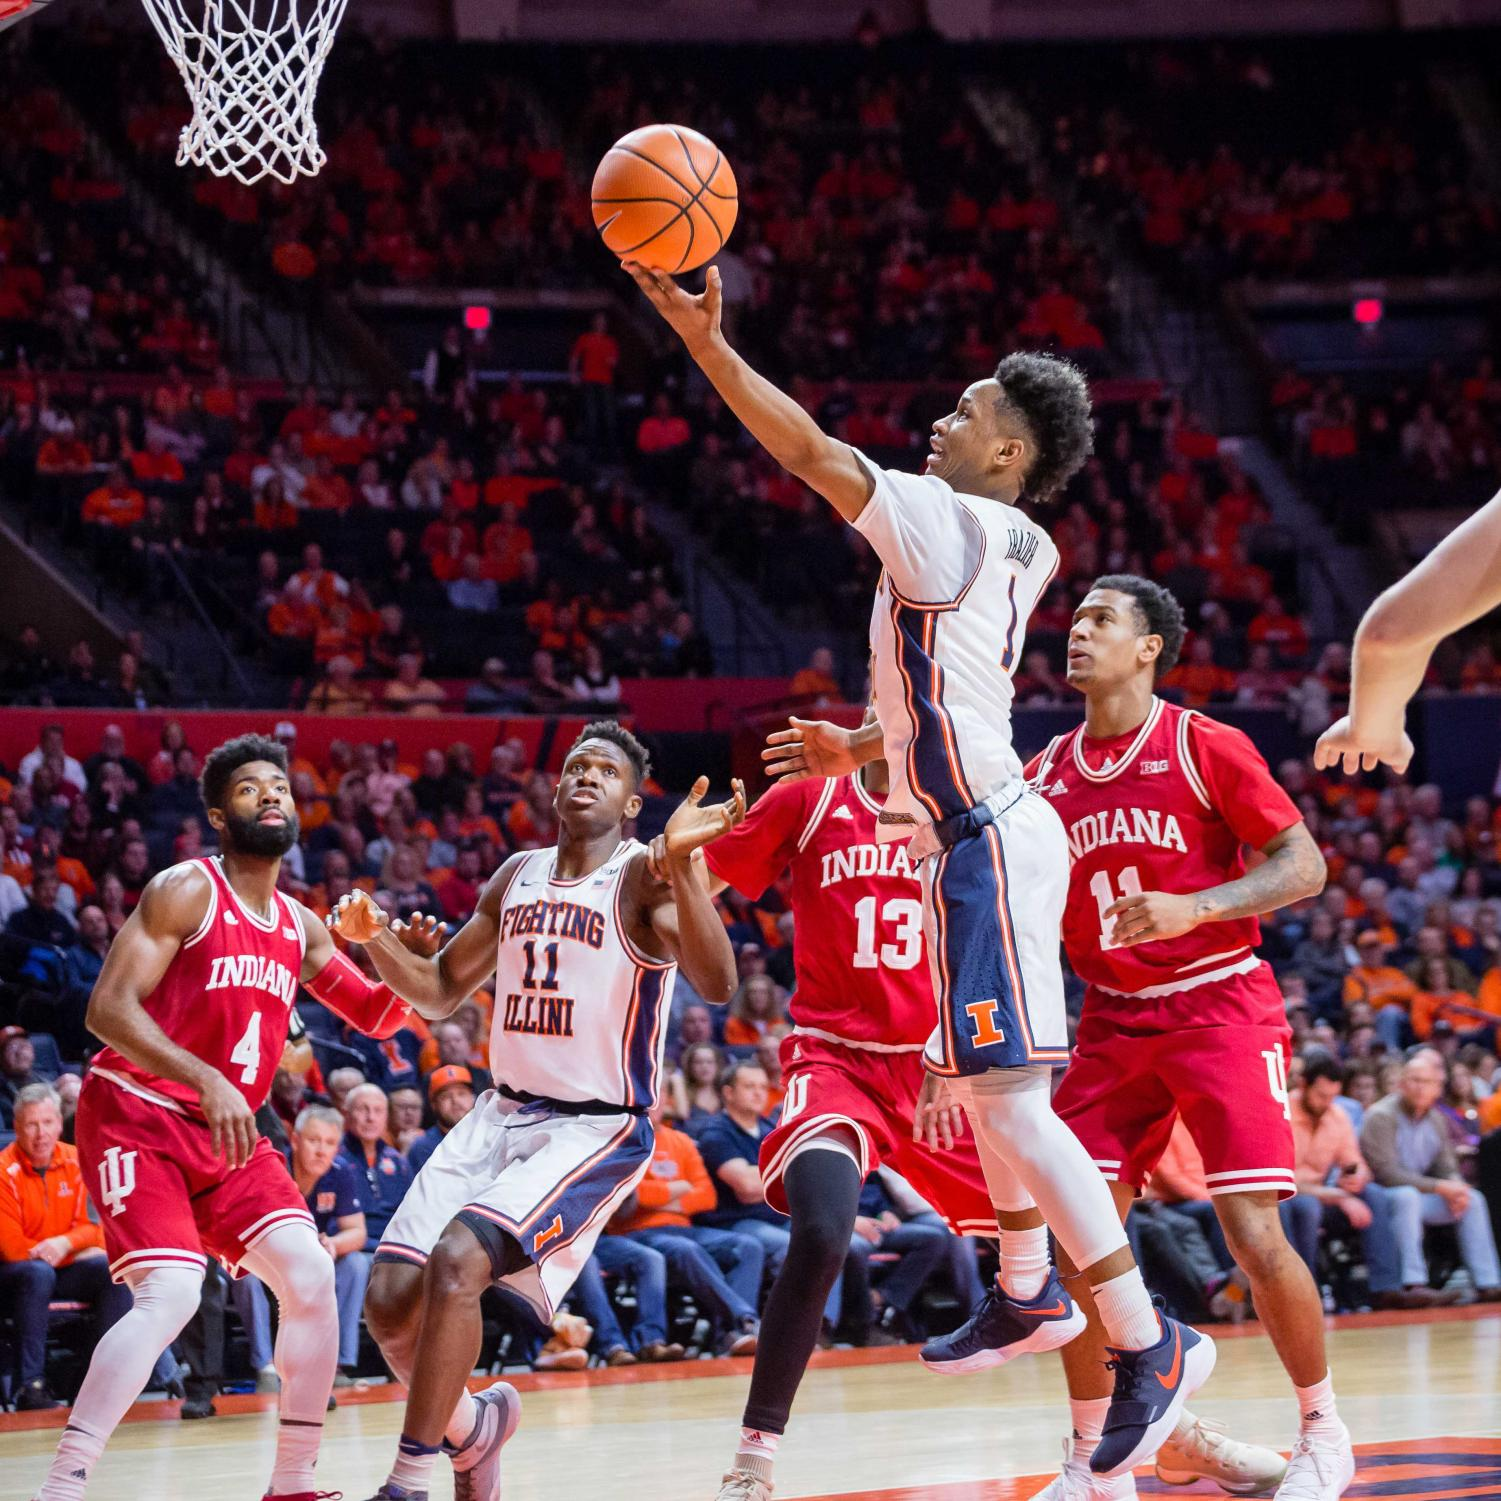 Illinois guard Trent Frazier goes up for a layup during the game against Indiana at State Farm Center on Wednesday, Jan. 24, 2018. The Illini won 73-71.